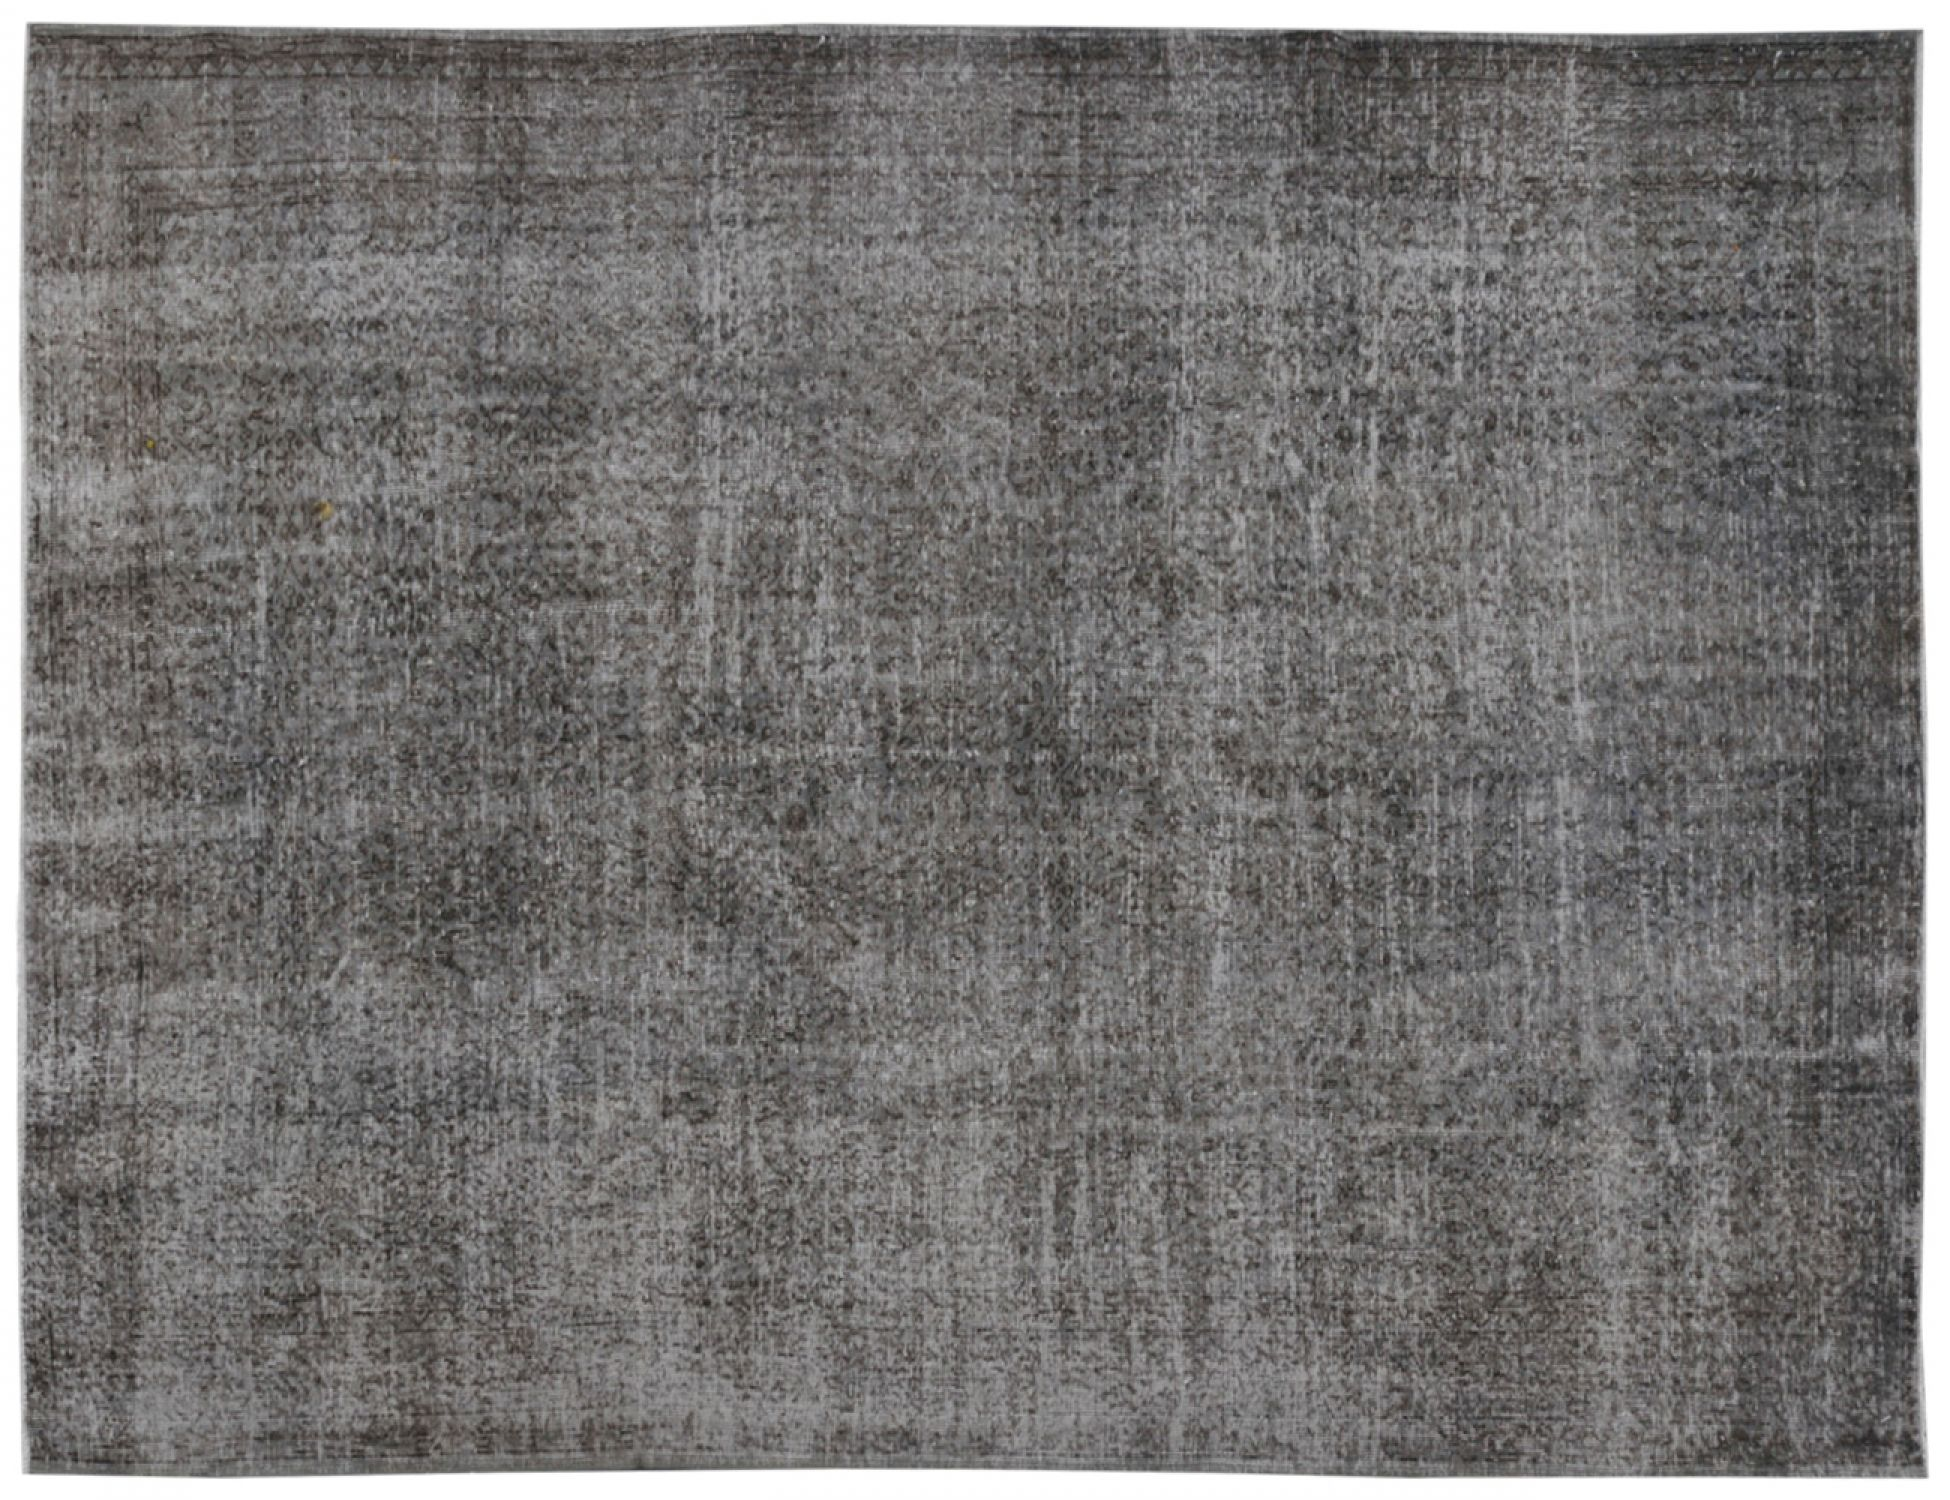 Vintage Carpet  grey <br/>320 x 216 cm